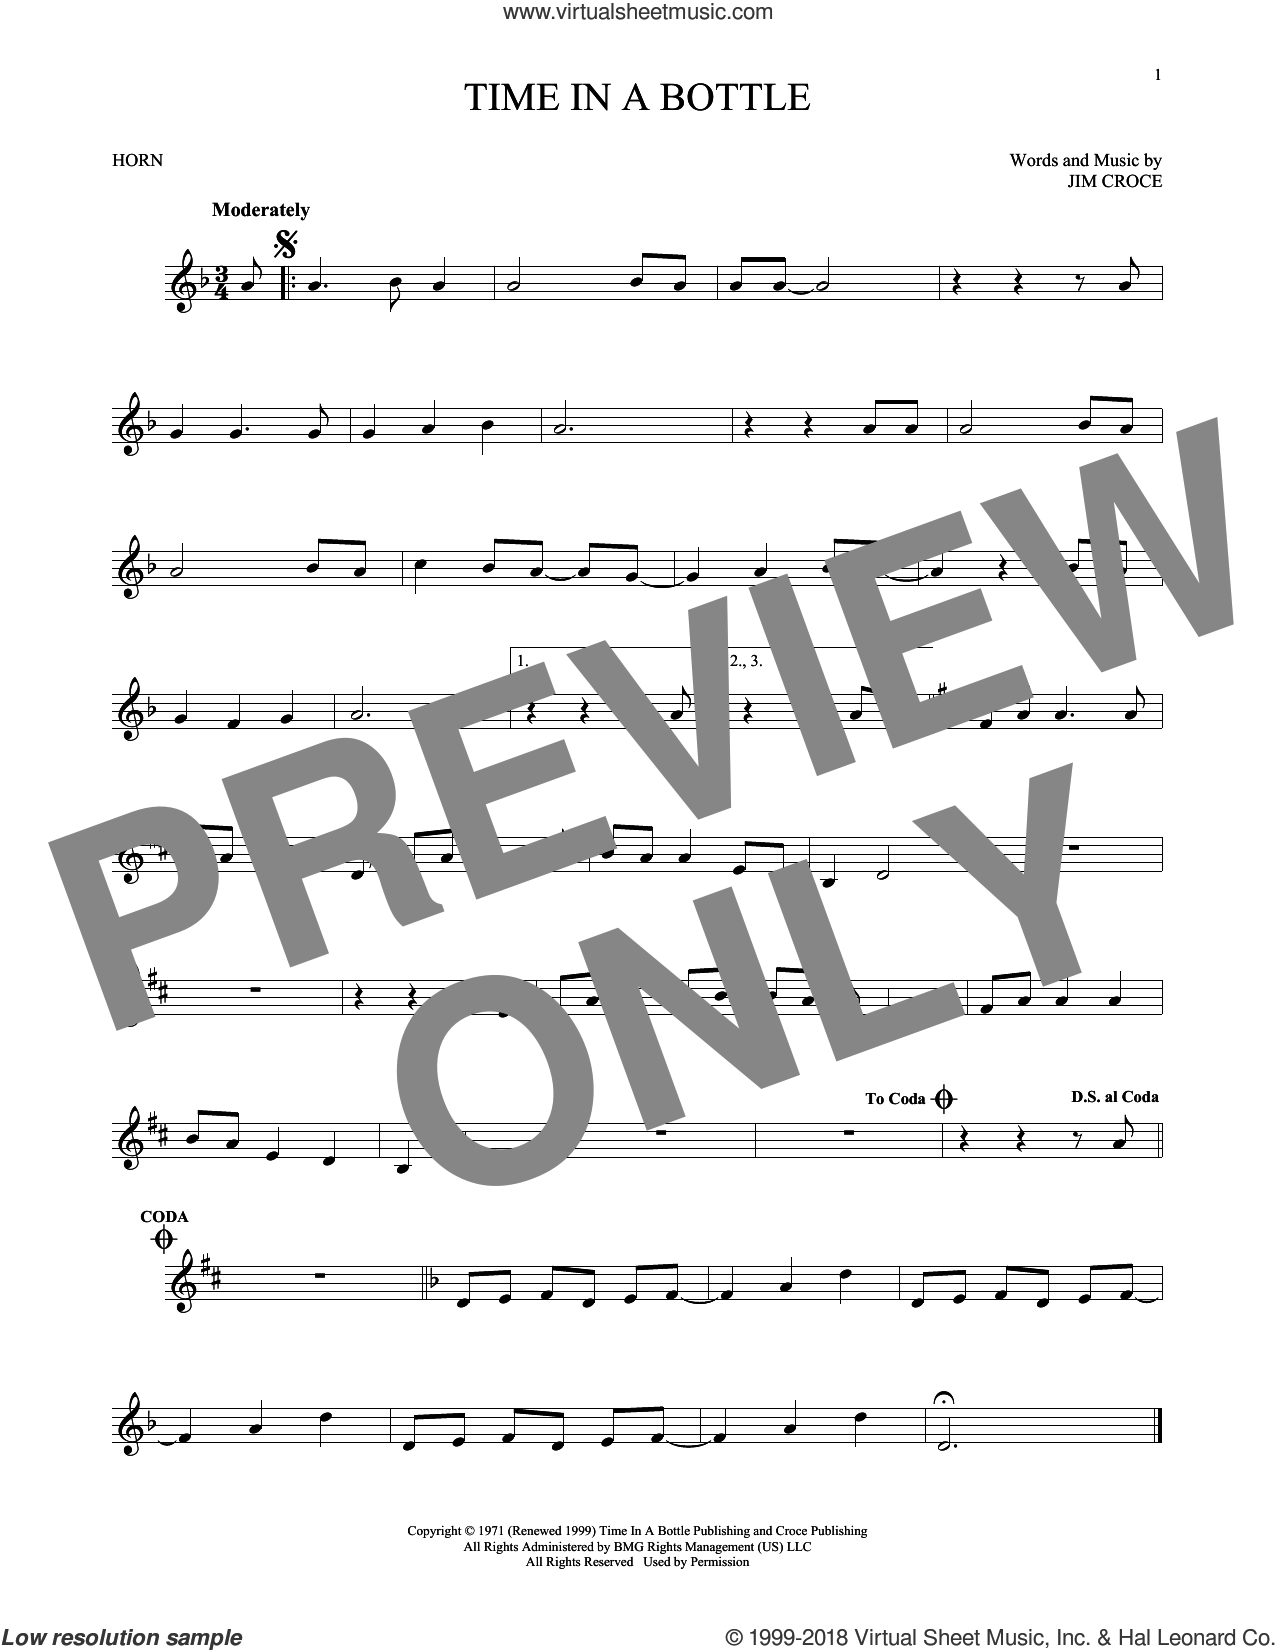 Time In A Bottle sheet music for horn solo by Jim Croce, intermediate skill level